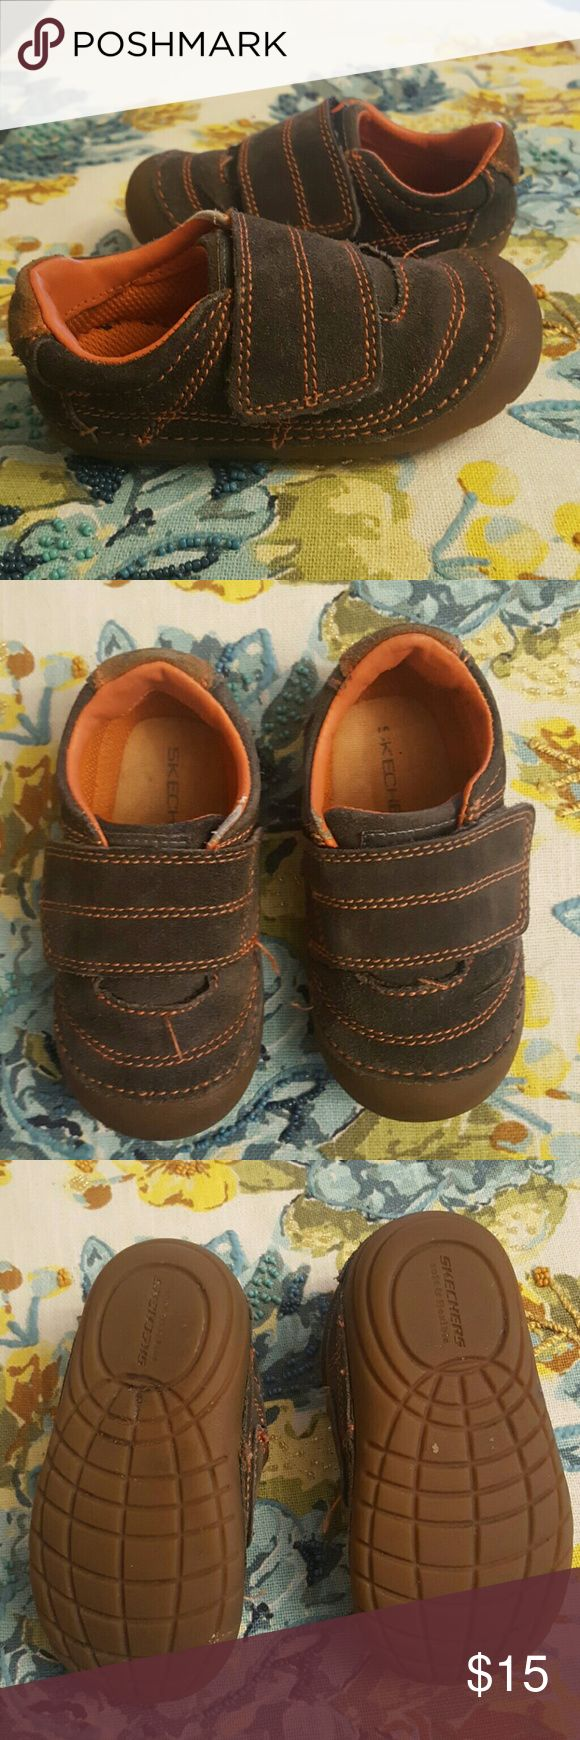 Sketchers Sneakers Sketchers Sneakers gray and orange baby shoes,size 6. Skechers Shoes Baby & Walker